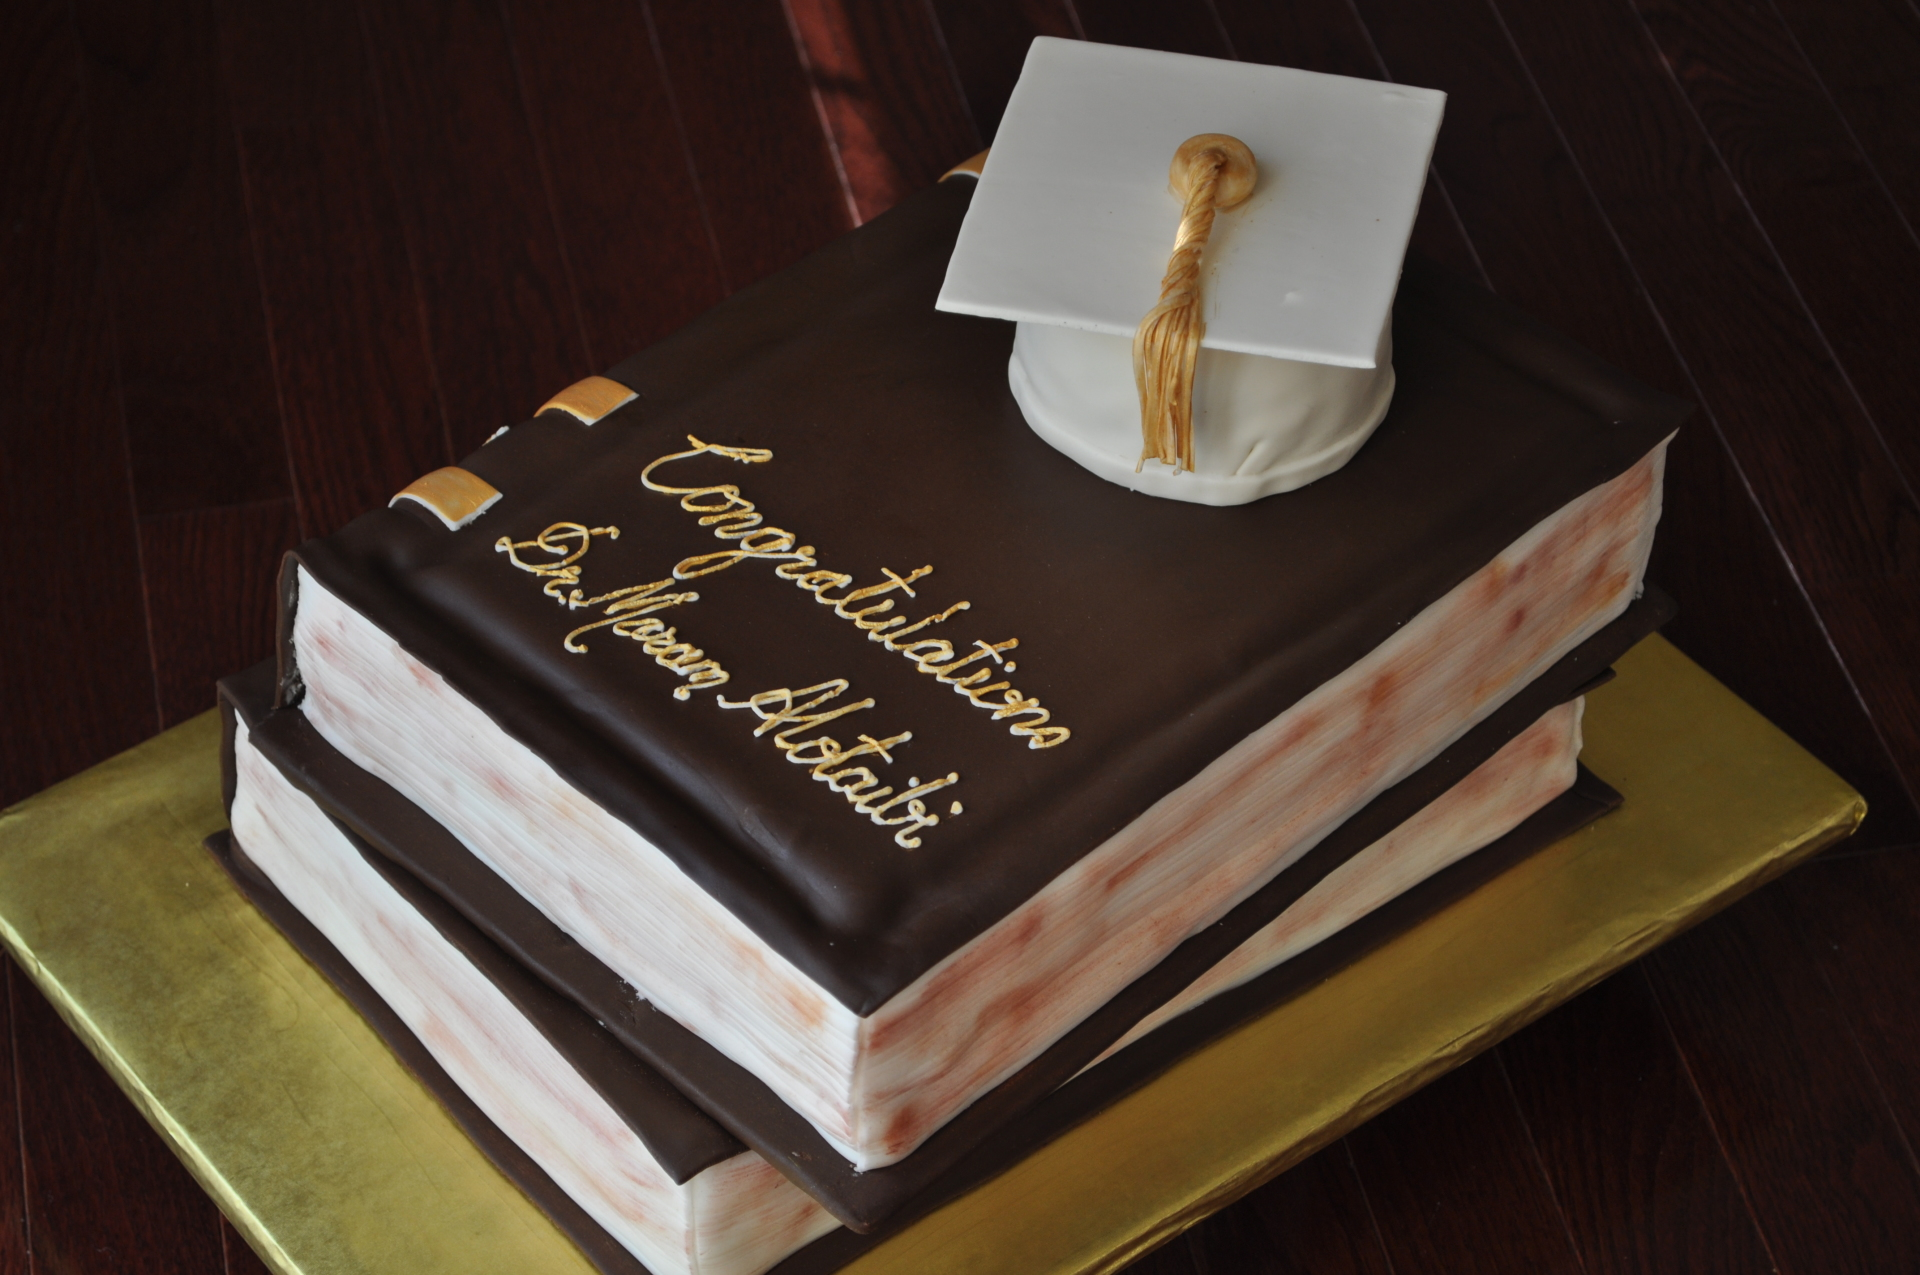 Books graduation cake,grad hat cake